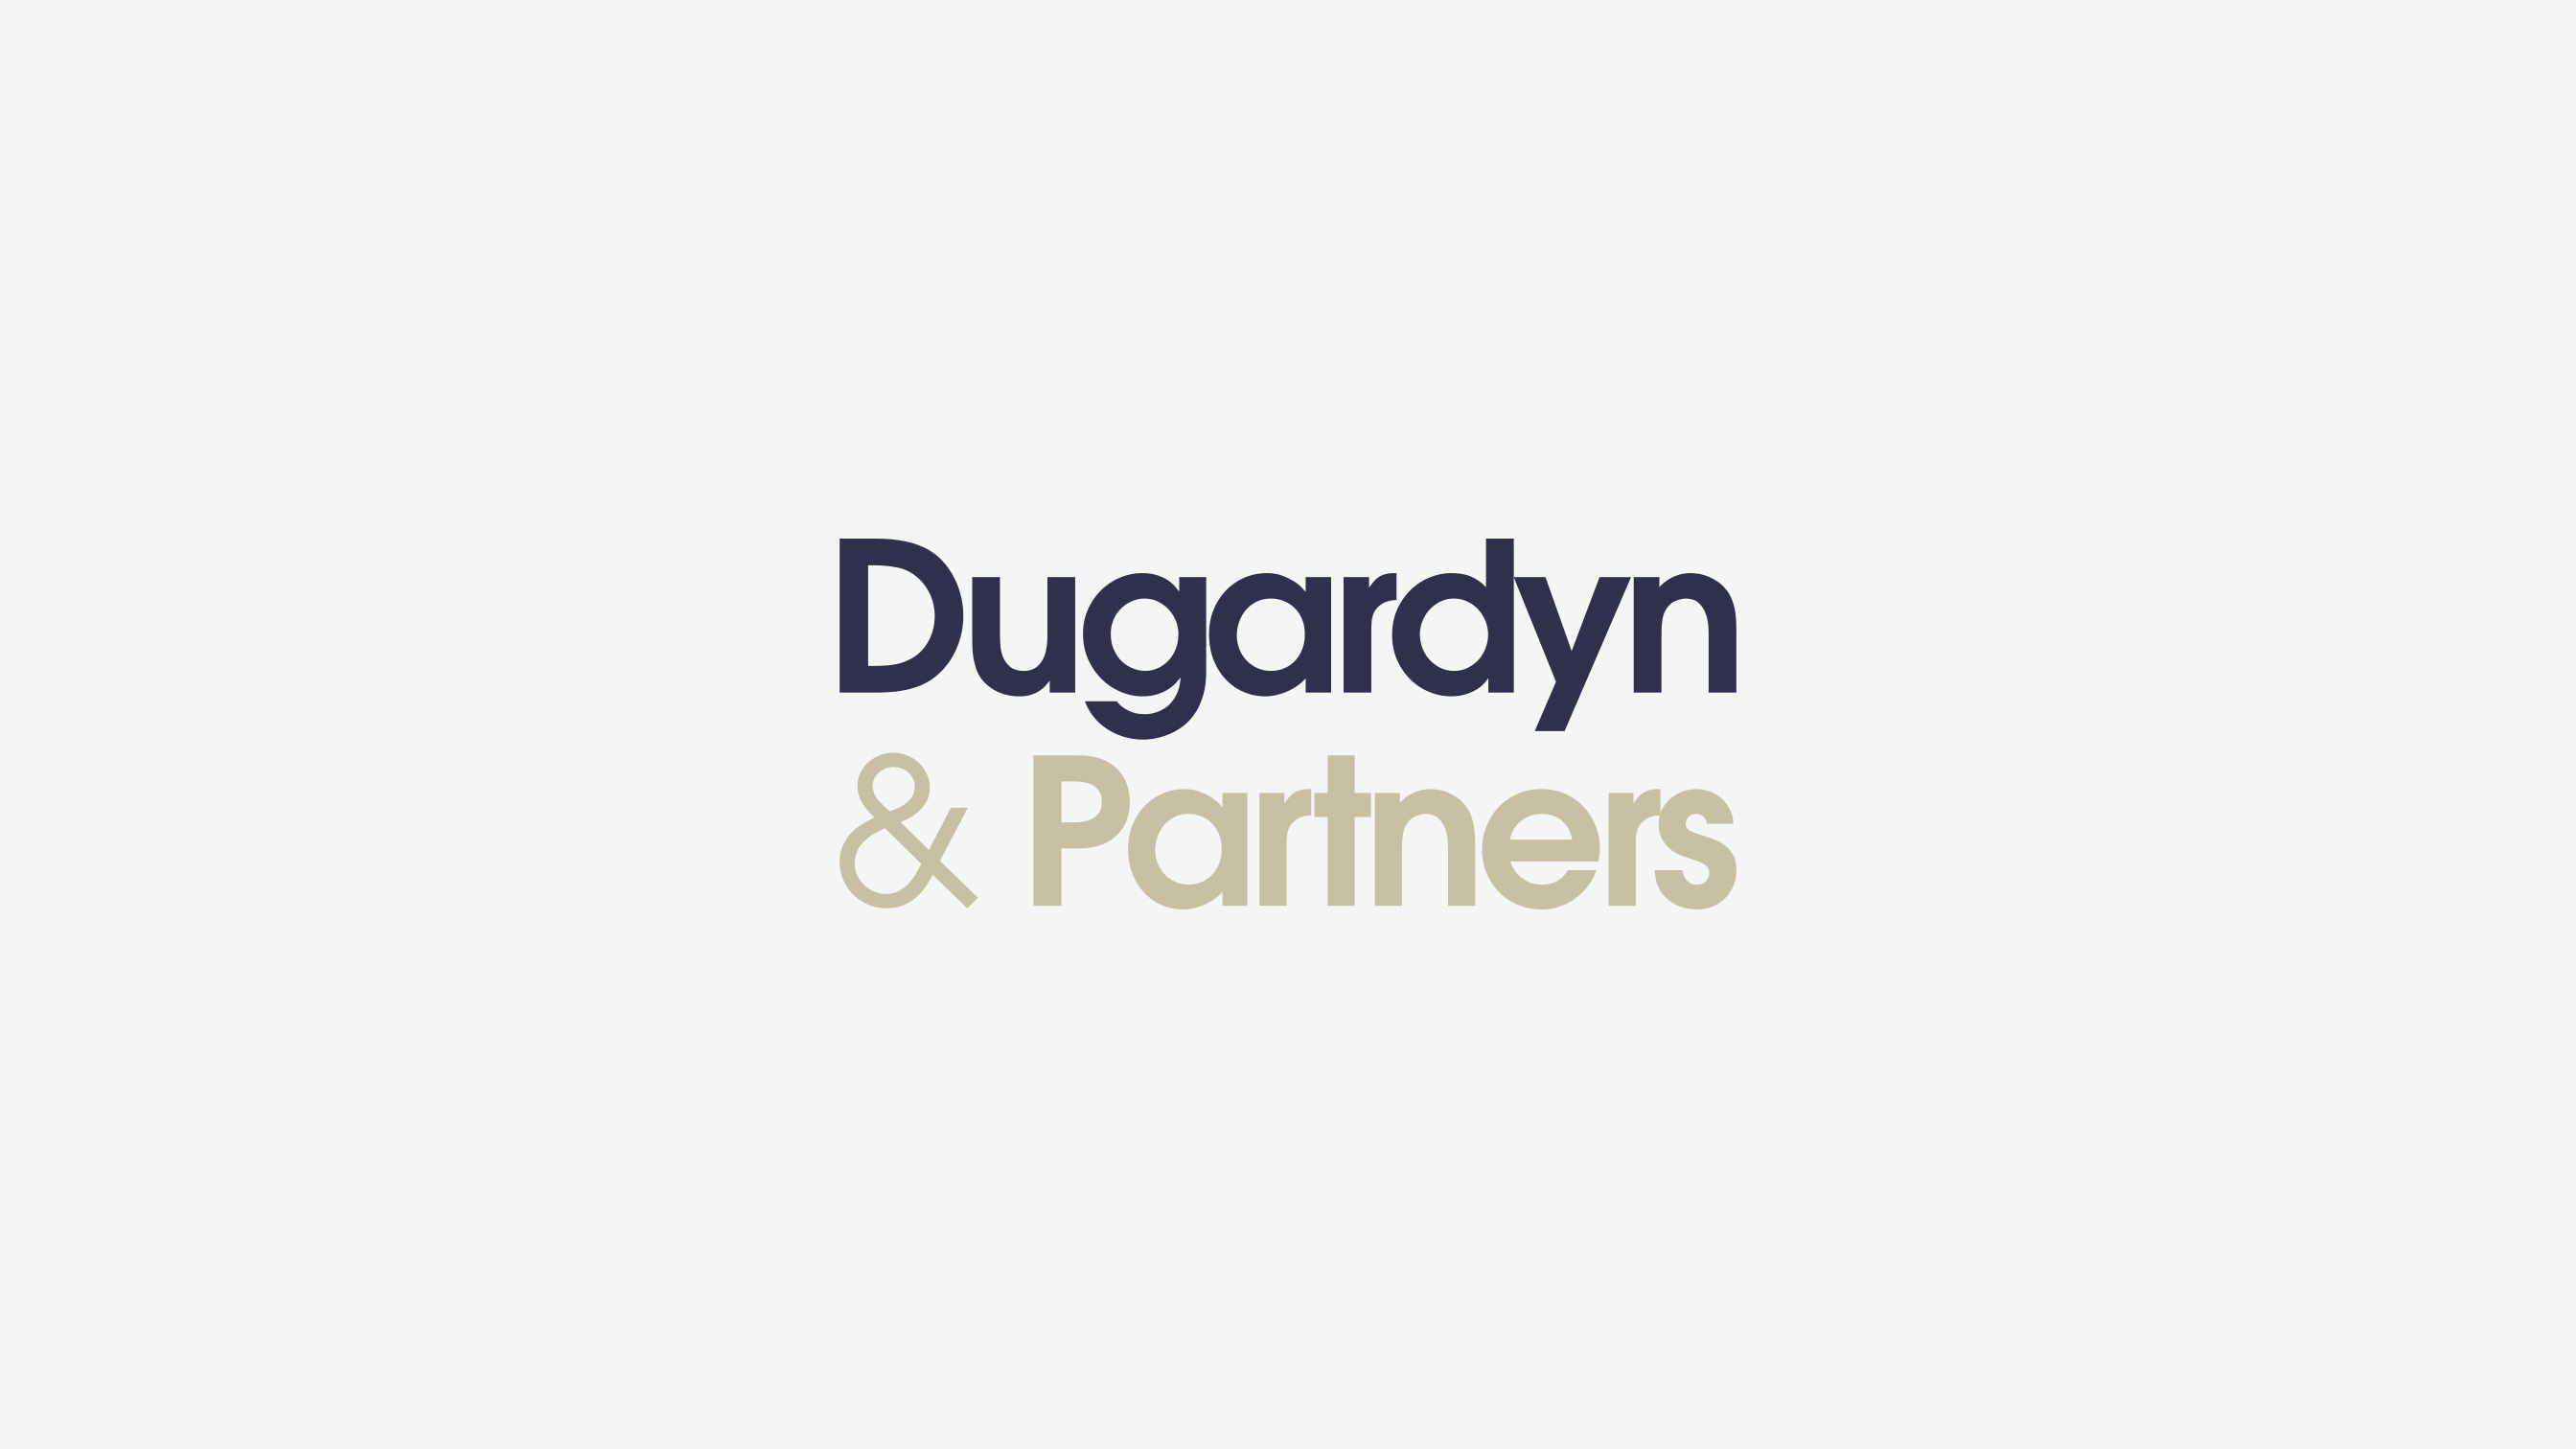 01-dugardyn-et-partners-pikteo-webdesign-graphic-design-freelance-paris-bruxelles-londres